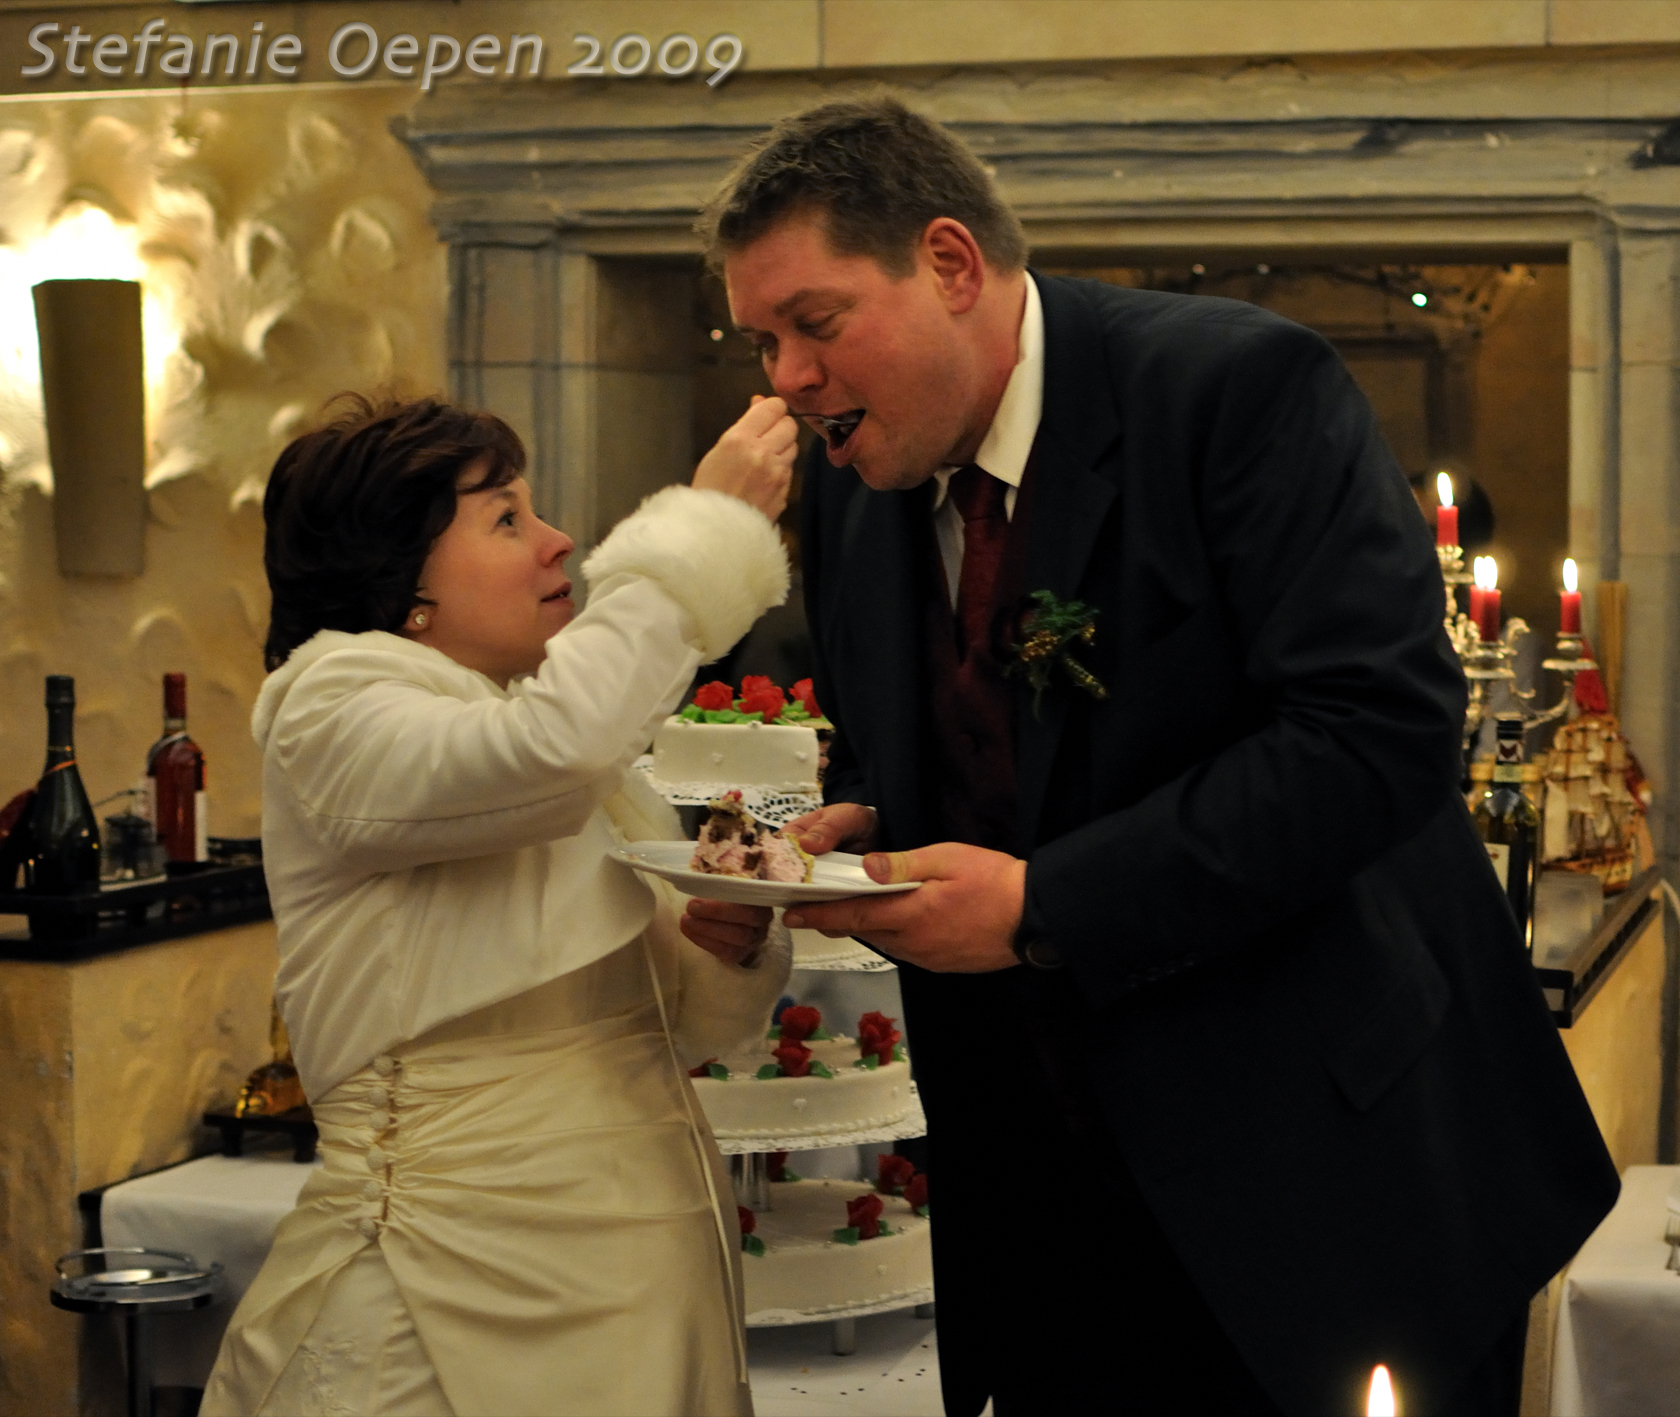 Eating wedding cake; December 2009